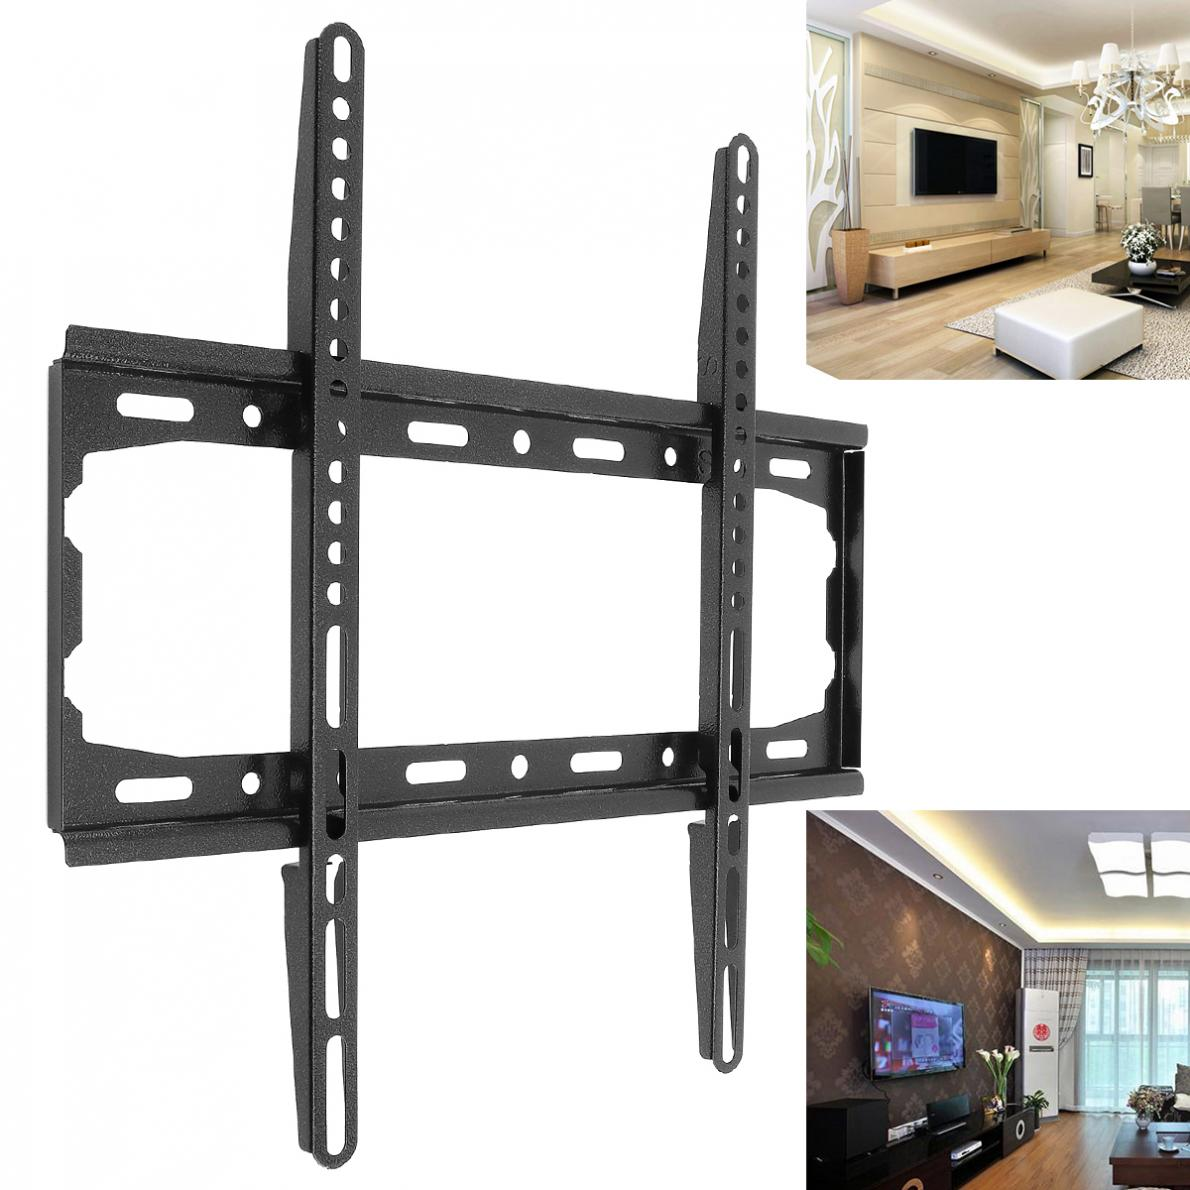 Universal 45KG TV Wall Mount Bracket Fixed Flat Panel TV Frame for 26-55 Inch LCD LED Monitor Flat Panel TV Stand Holder стоимость